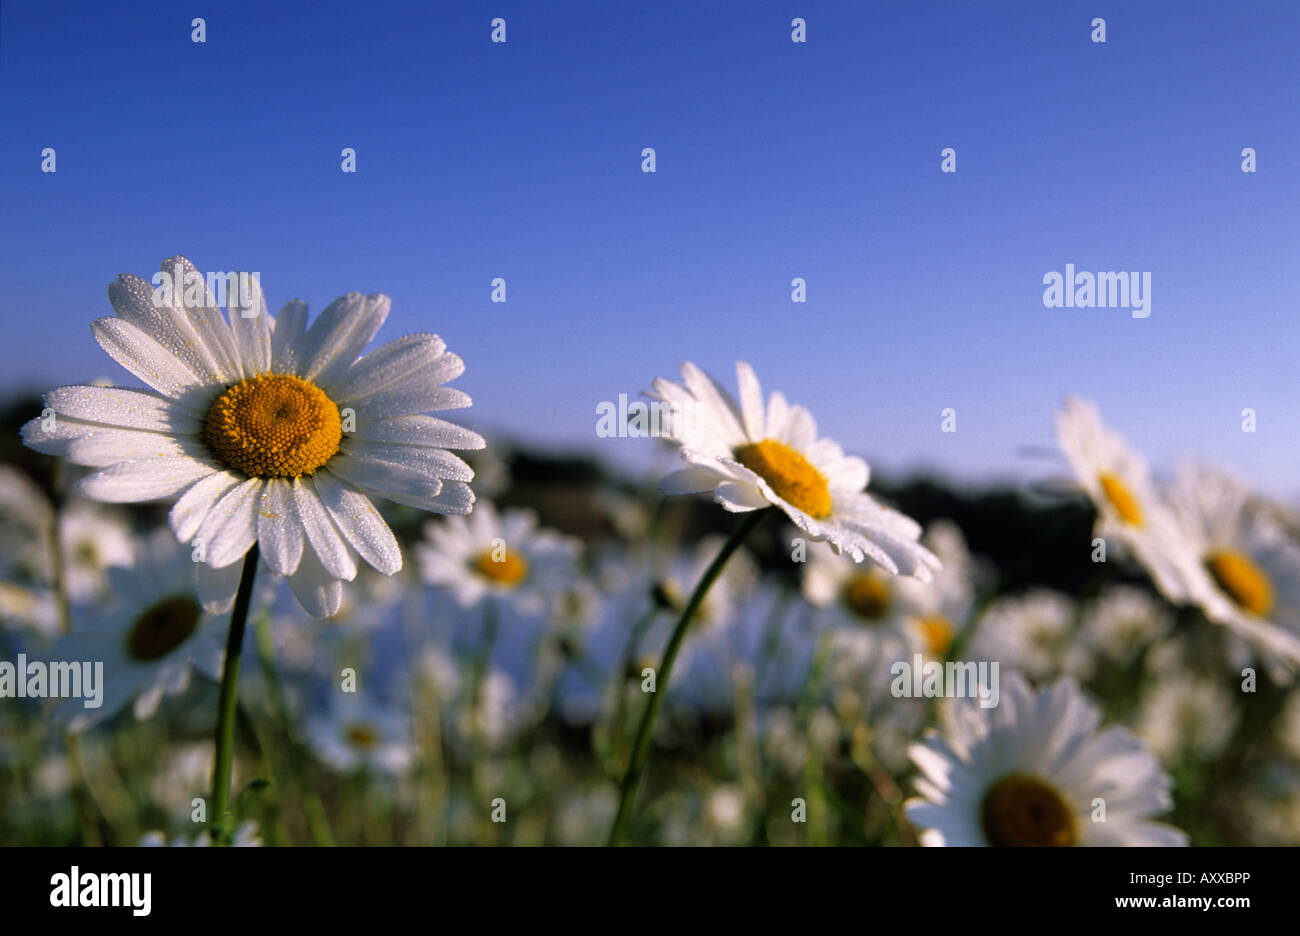 Daisy, Asteraceae, Hiller Moor, NRW, Germany - Stock Image